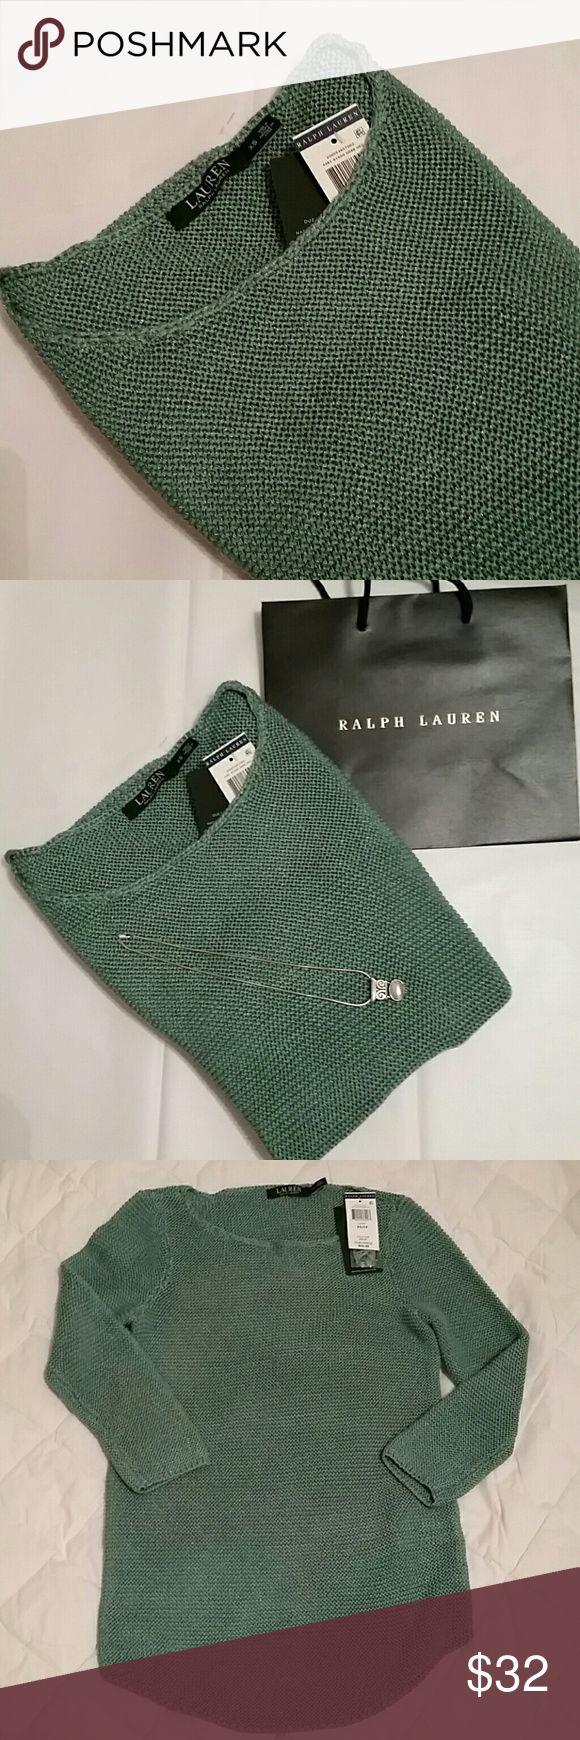 ♡RALPH LAUREN SWEATER Sage green Ralph Lauren knit sweater  Size XS Measurements: armpit to pit 15 inches flat, sleeve 19 inches, length shoulder to hem 25 inches. Brand New Tag also has extra thread. *I'm finding you CHRISTMAS DEALS FOR YOUR LIST** GREAT CHRISTMAS PRESENT ♡ ♡ ♡ Ralph Lauren Sweaters